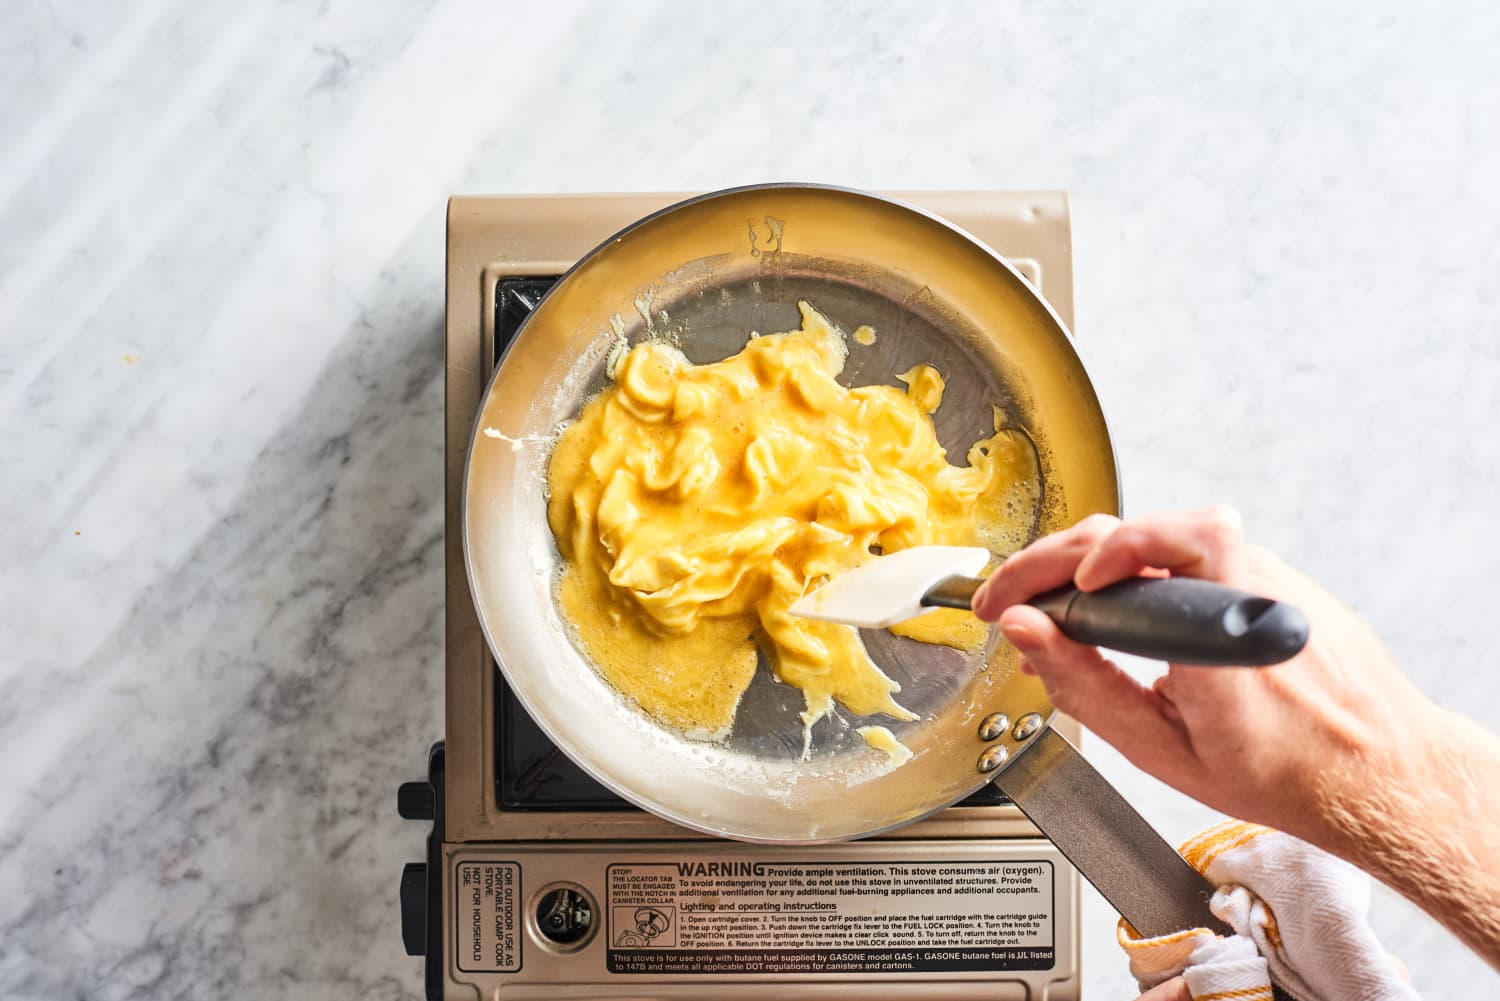 The Best Carbon Steel Skillets for Most Home Cooks